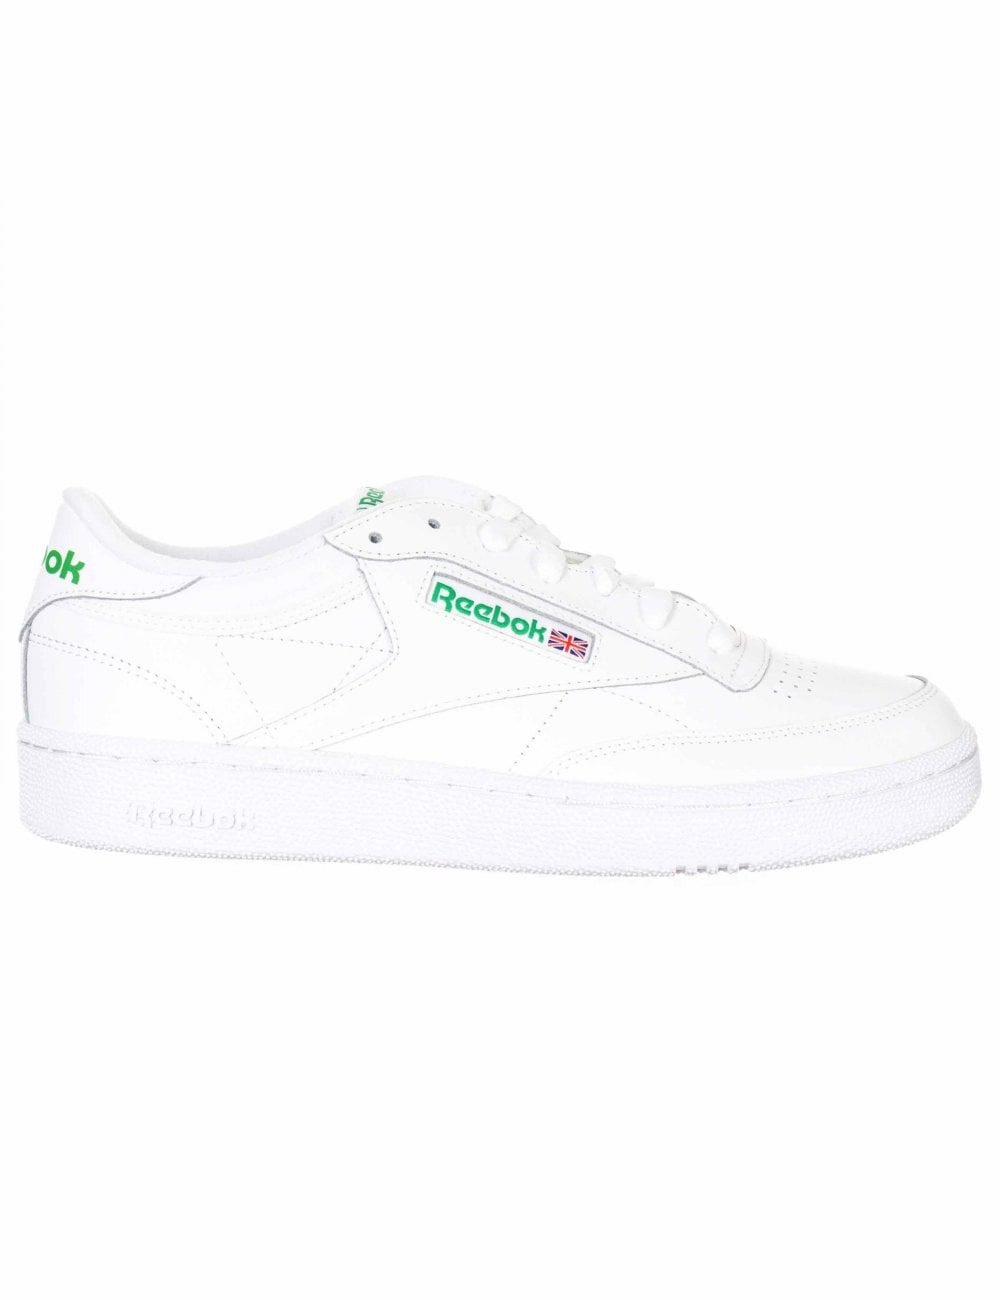 30a2193b934d7 Reebok Club C 85 Shoes - White Green - Footwear from Fat Buddha Store UK